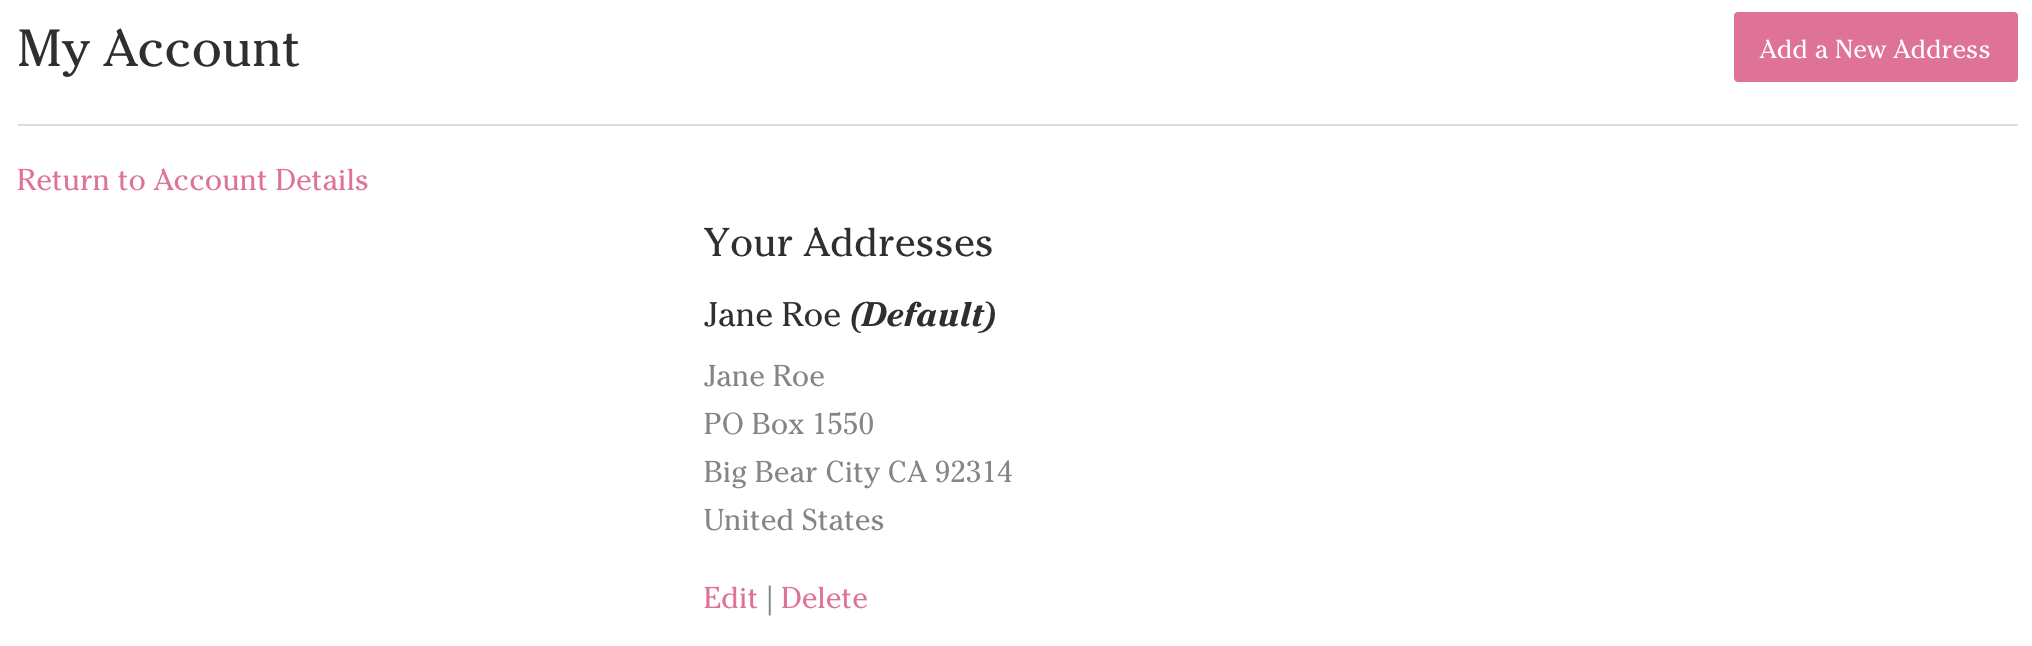 edit address on my yarn account